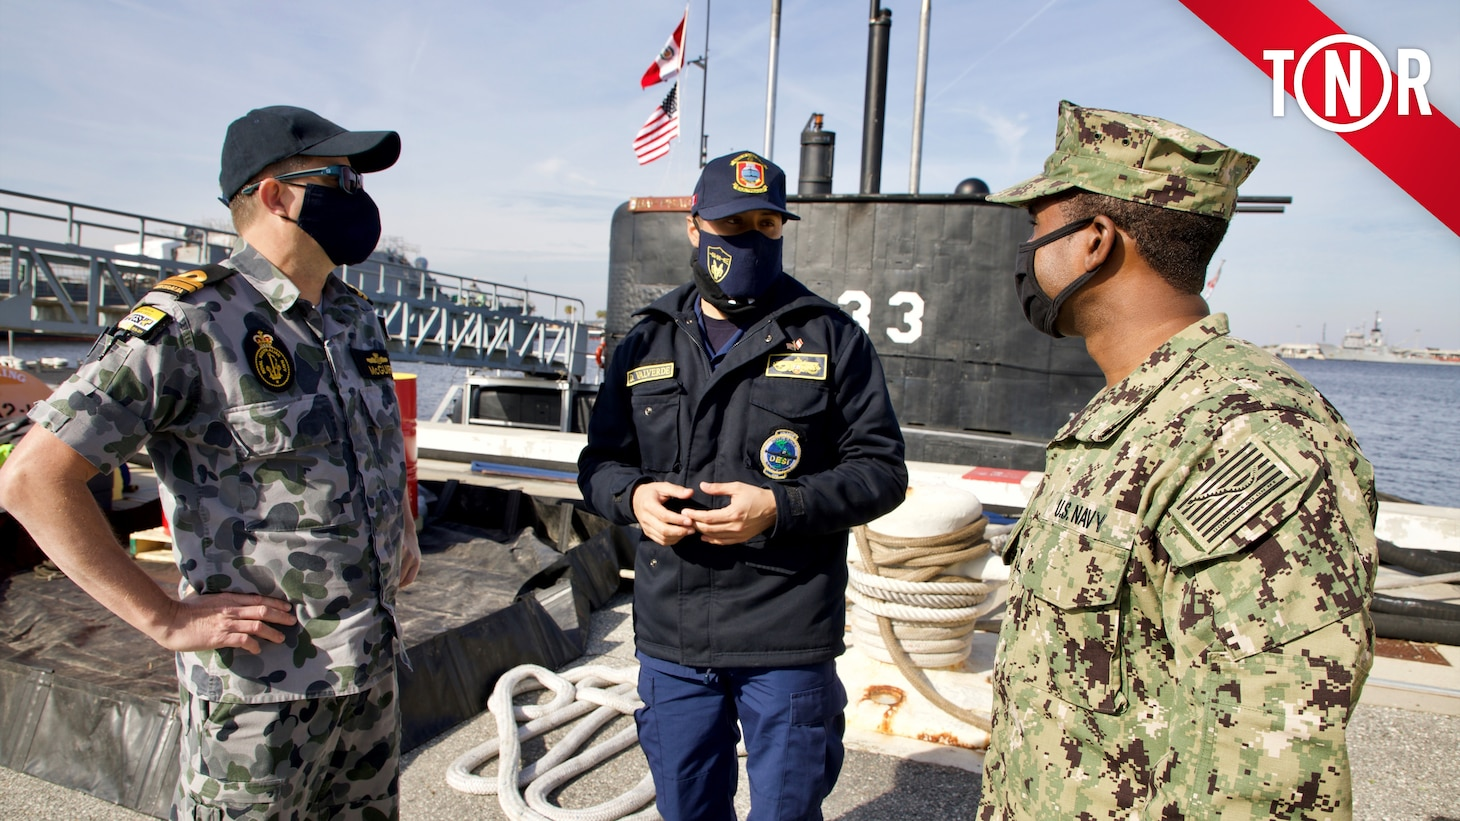 Lt. Matthew McGuire (RAN) and Lt. Reginald Caldwell speak with an officer from the Peruvian submarine BAP Pisagua (SS-33) at Naval Station Mayport. Pisagua is participating in exercises and training as part of the Diesel–Electric Submarine Initiative, now in its 20th year.